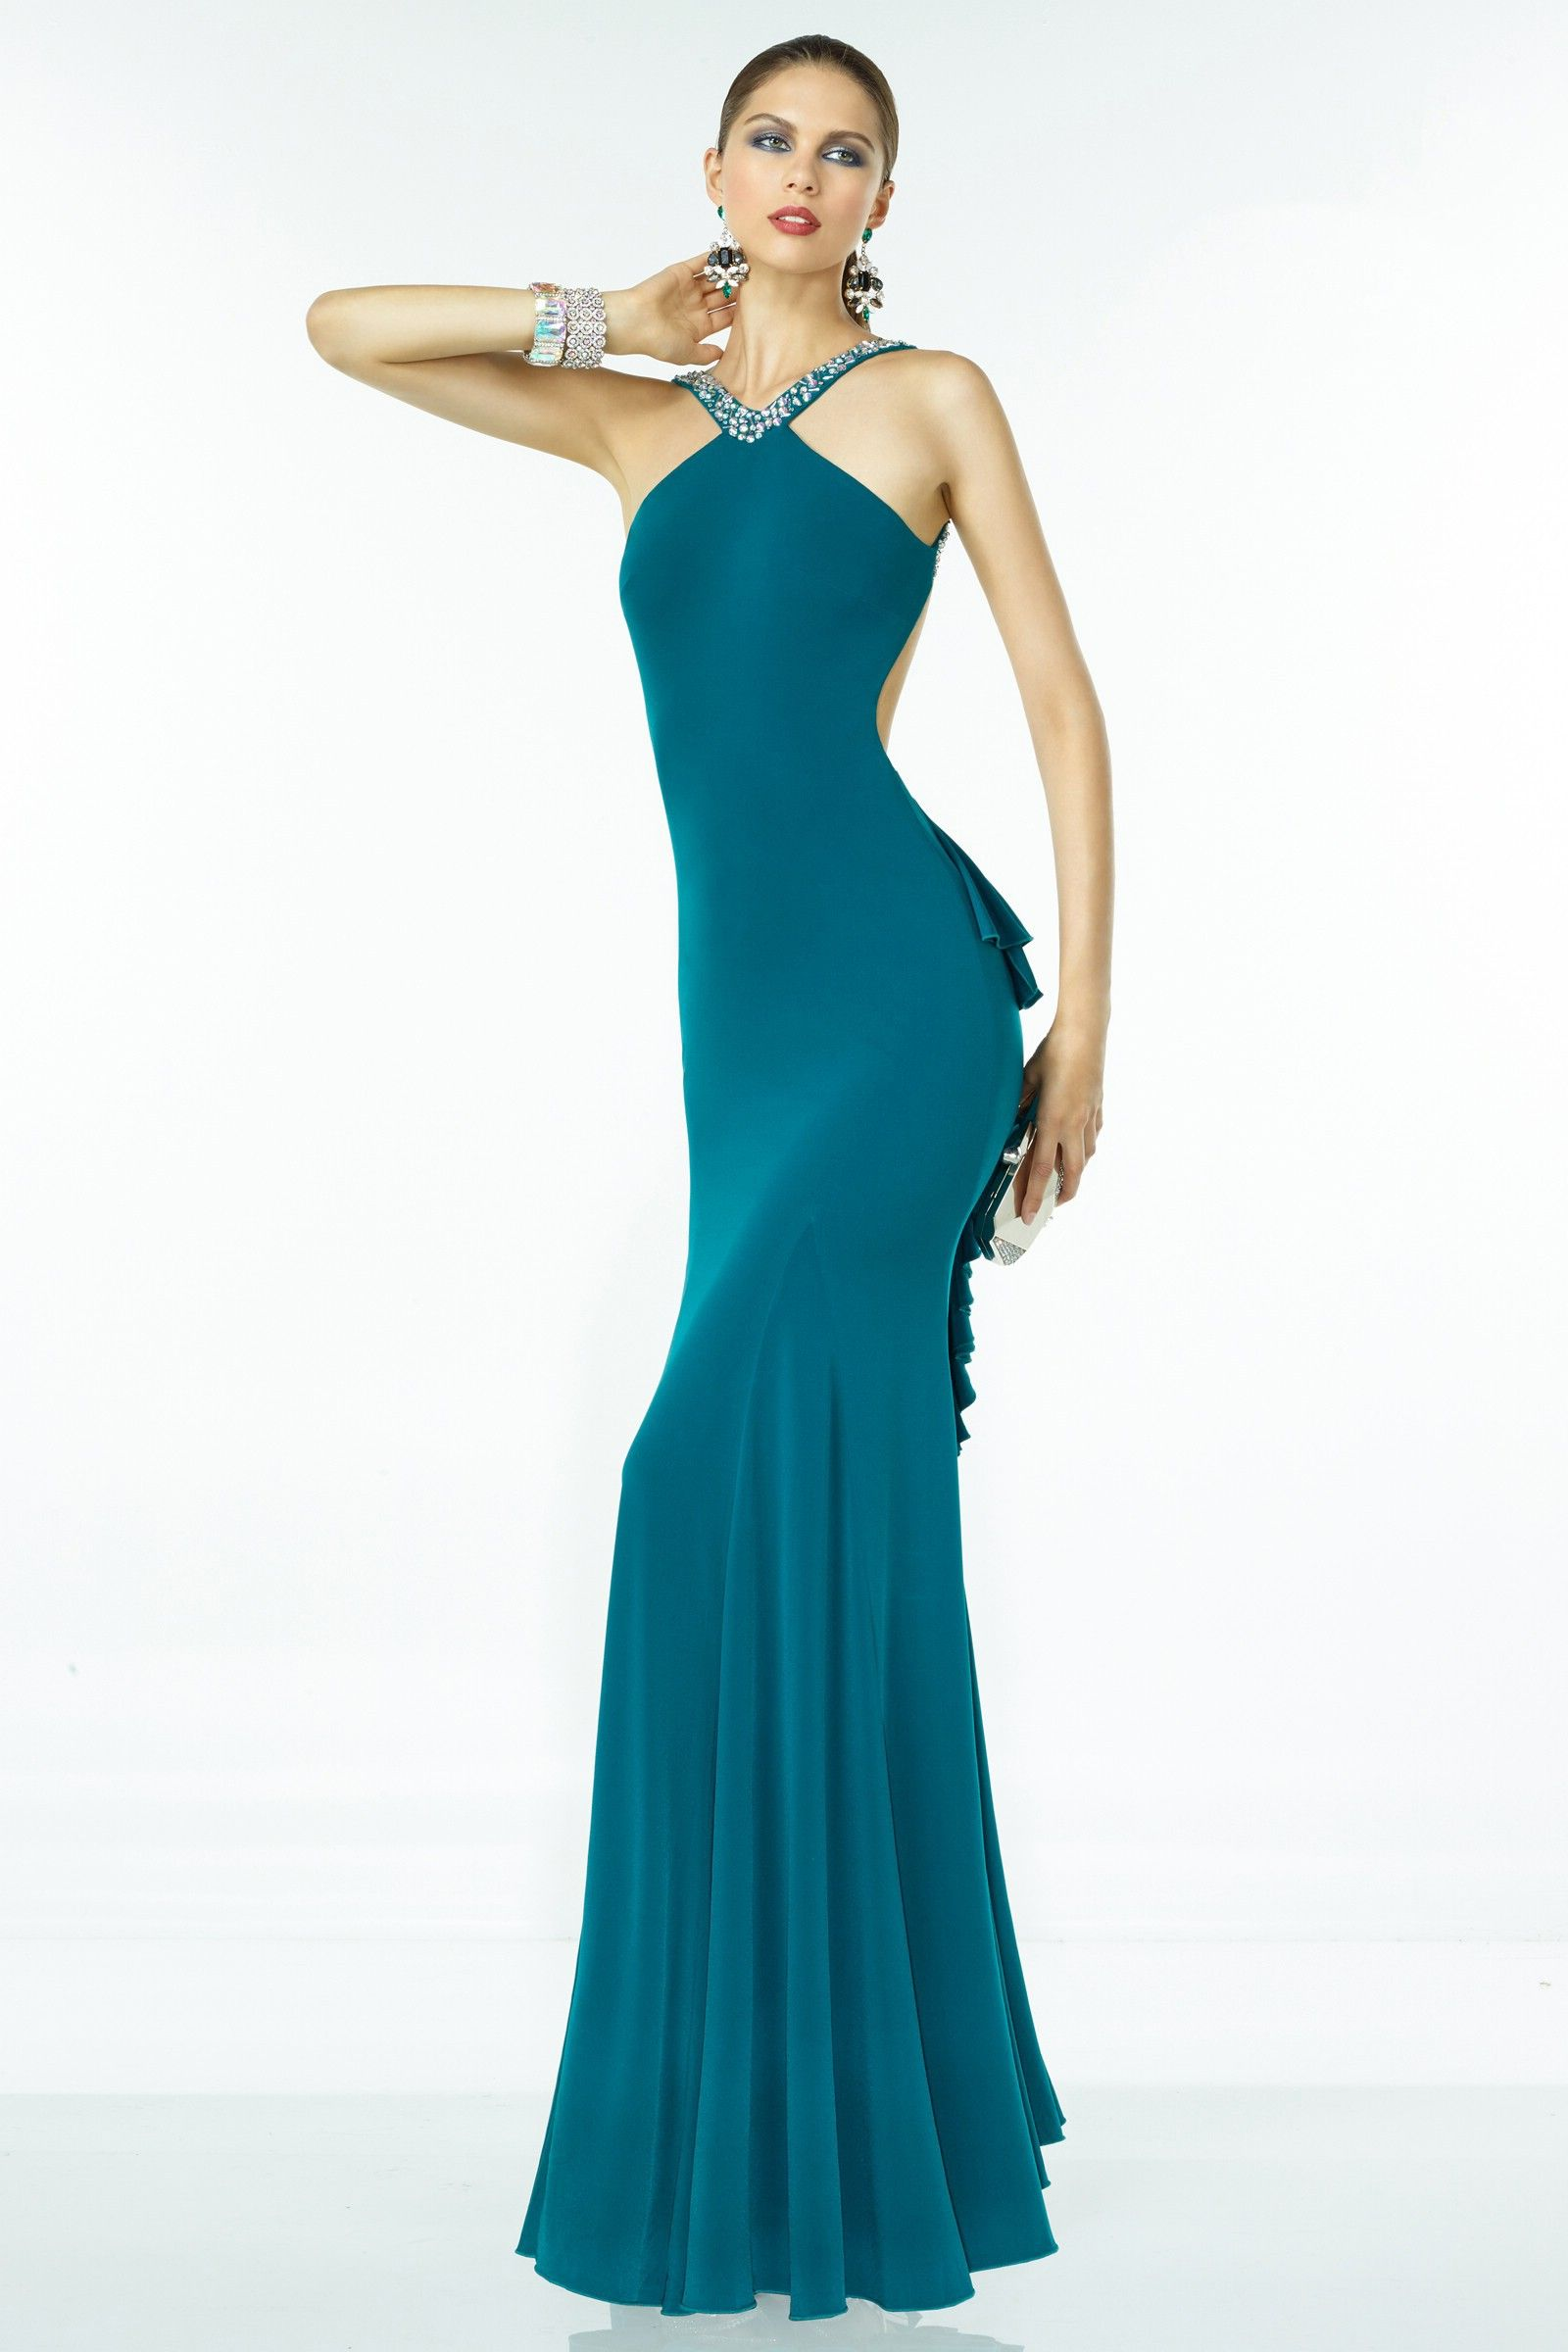 Backless Turquoise Jewel Spandex Sheath Column Evening Dress Cac0186 ...